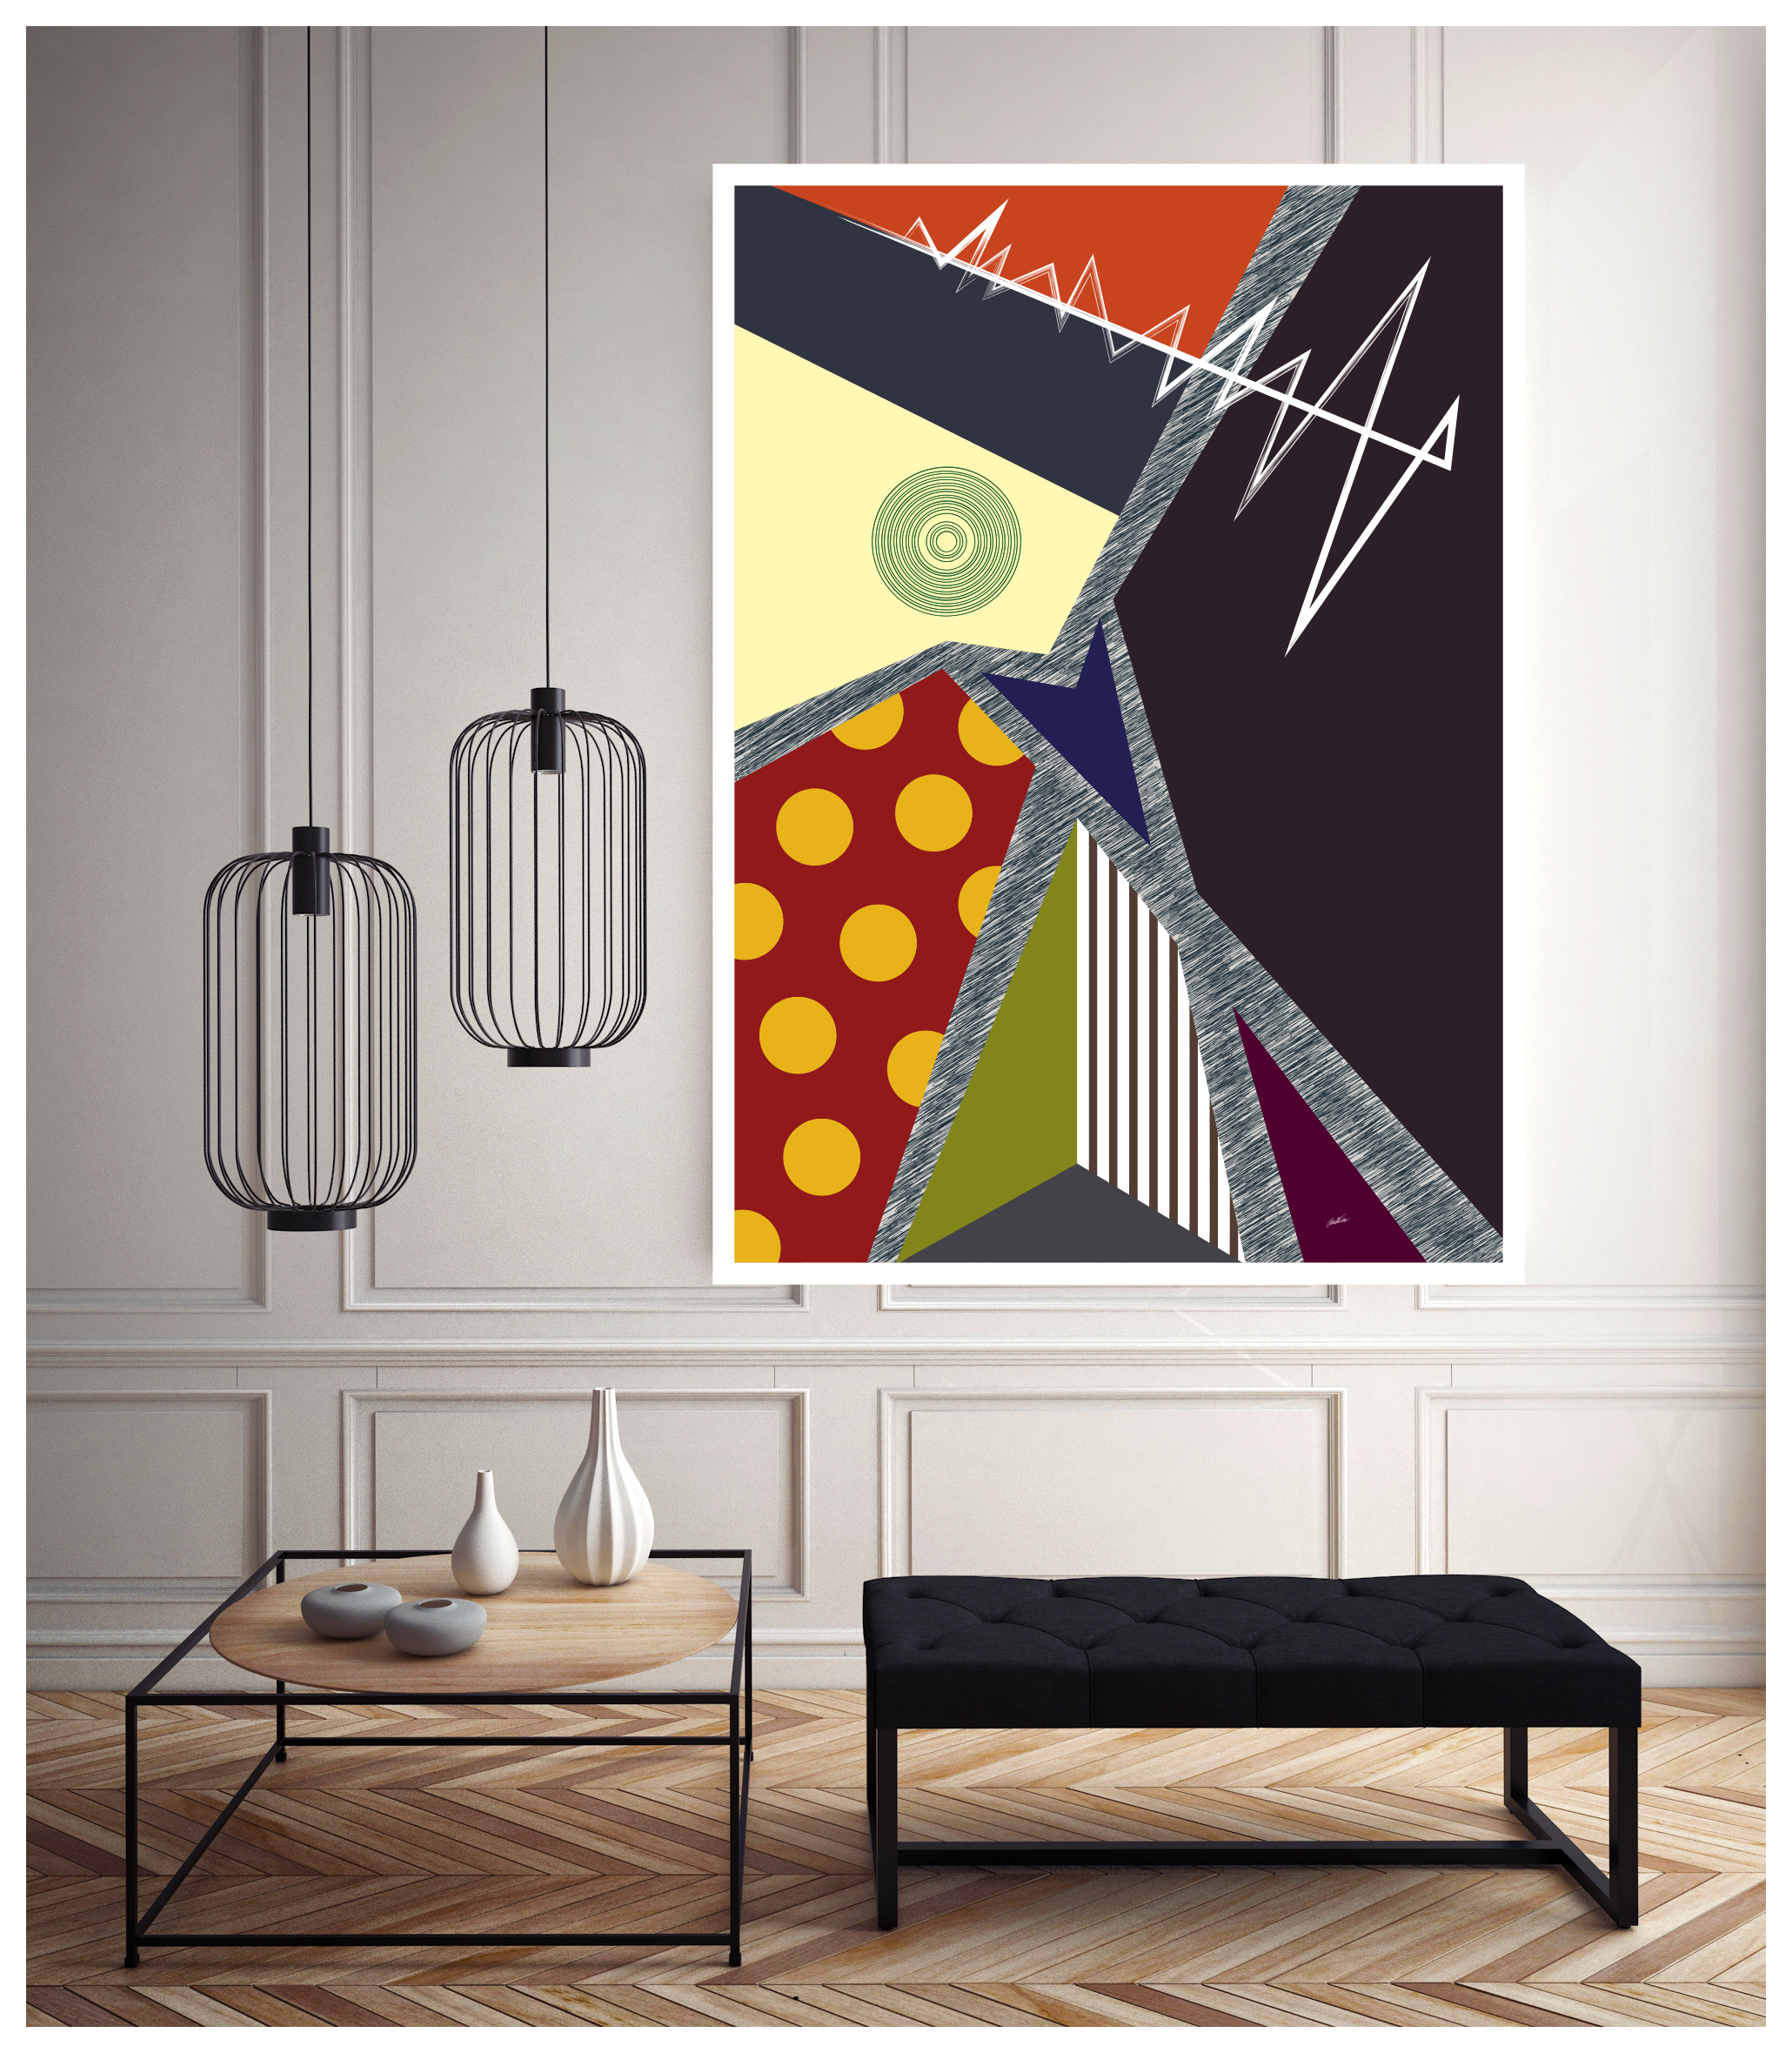 strange-powers-artwork-by-rene´winther-winther-studio-white-frame.png